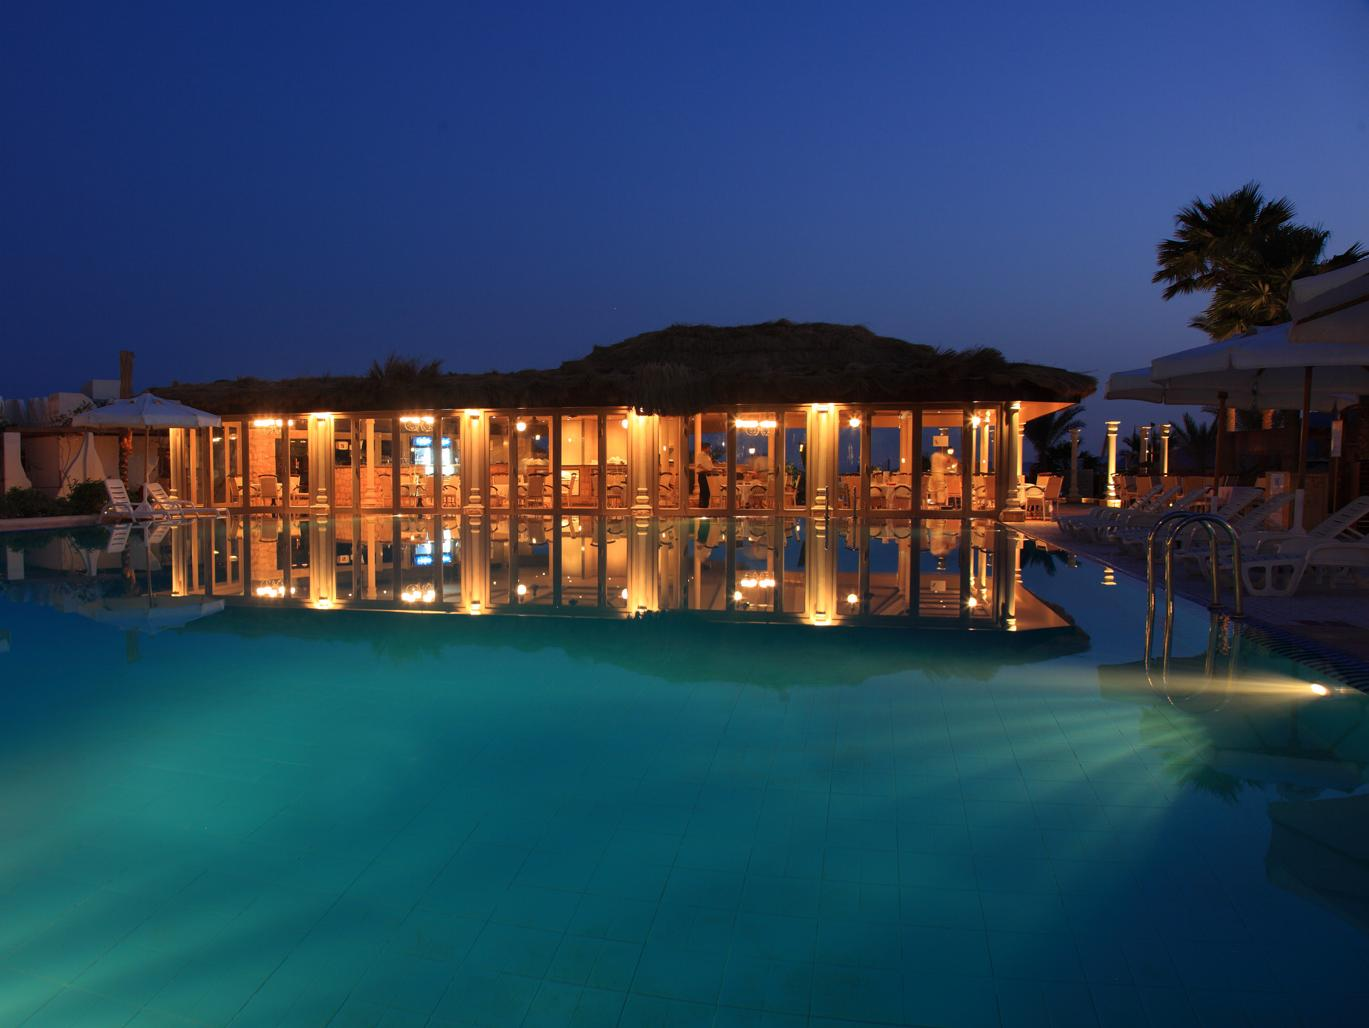 Swiss Inn Resort Dahab - Dahab ダハブ - Egypt エジプトのホテル